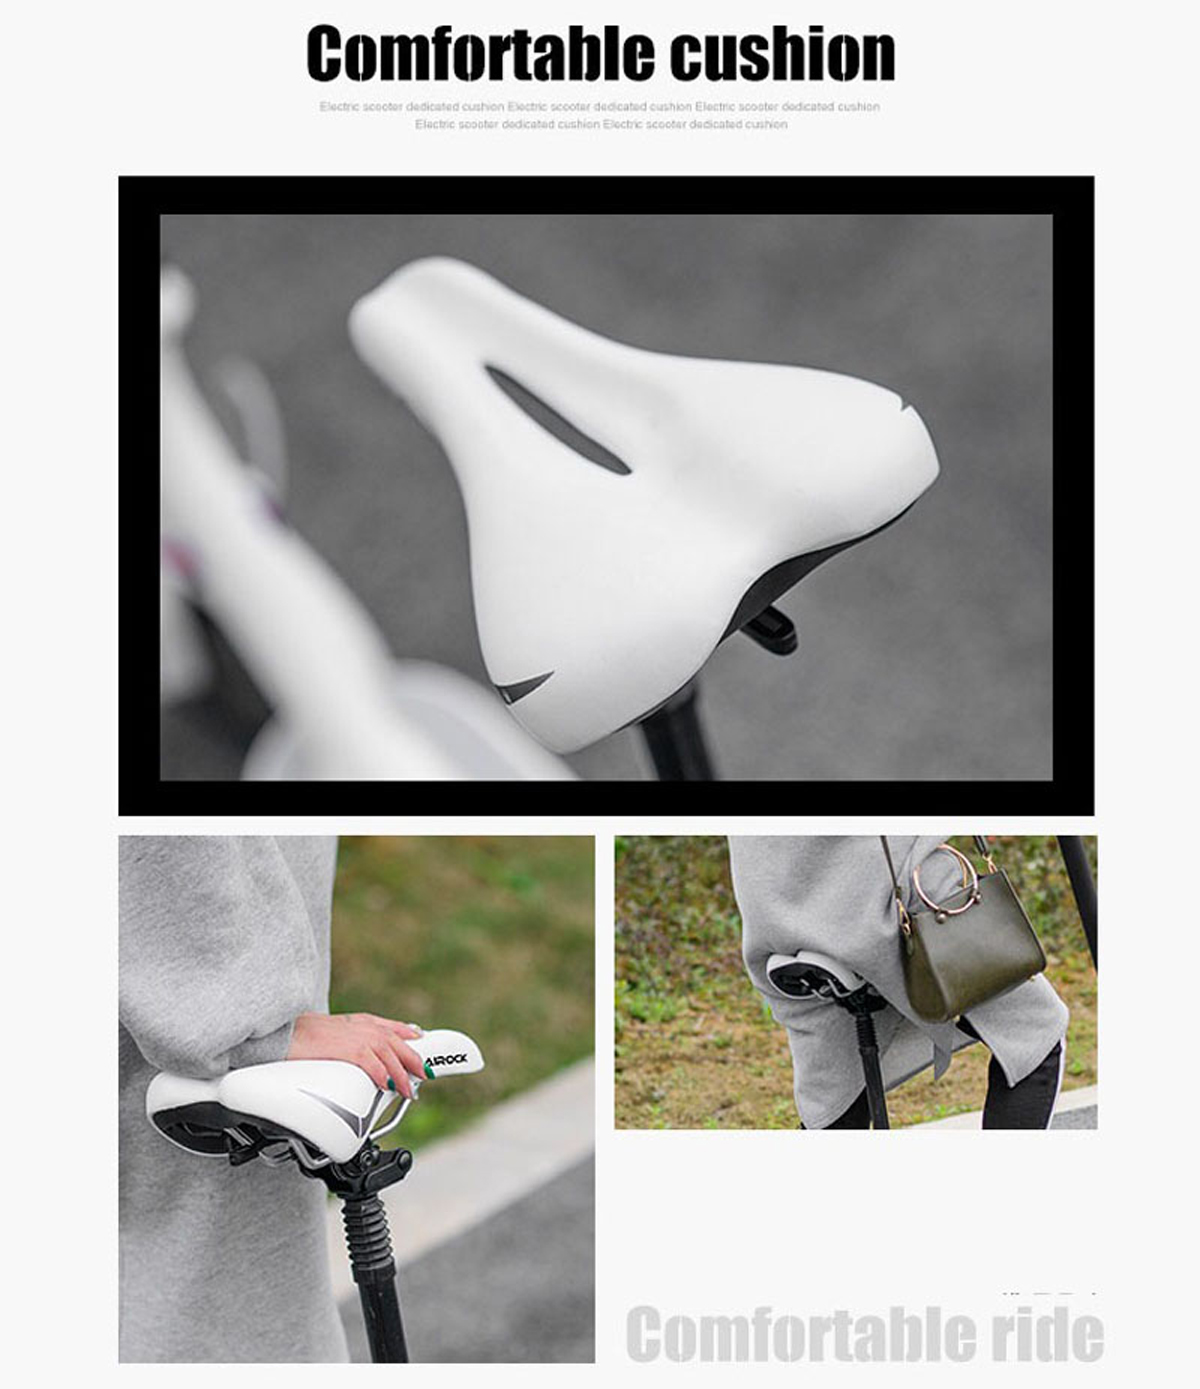 BIKIGHT Upgraded Version Seats for Xiaomi M365 Electric Scooter Skateboard Saddle Foldable Cushion Chair